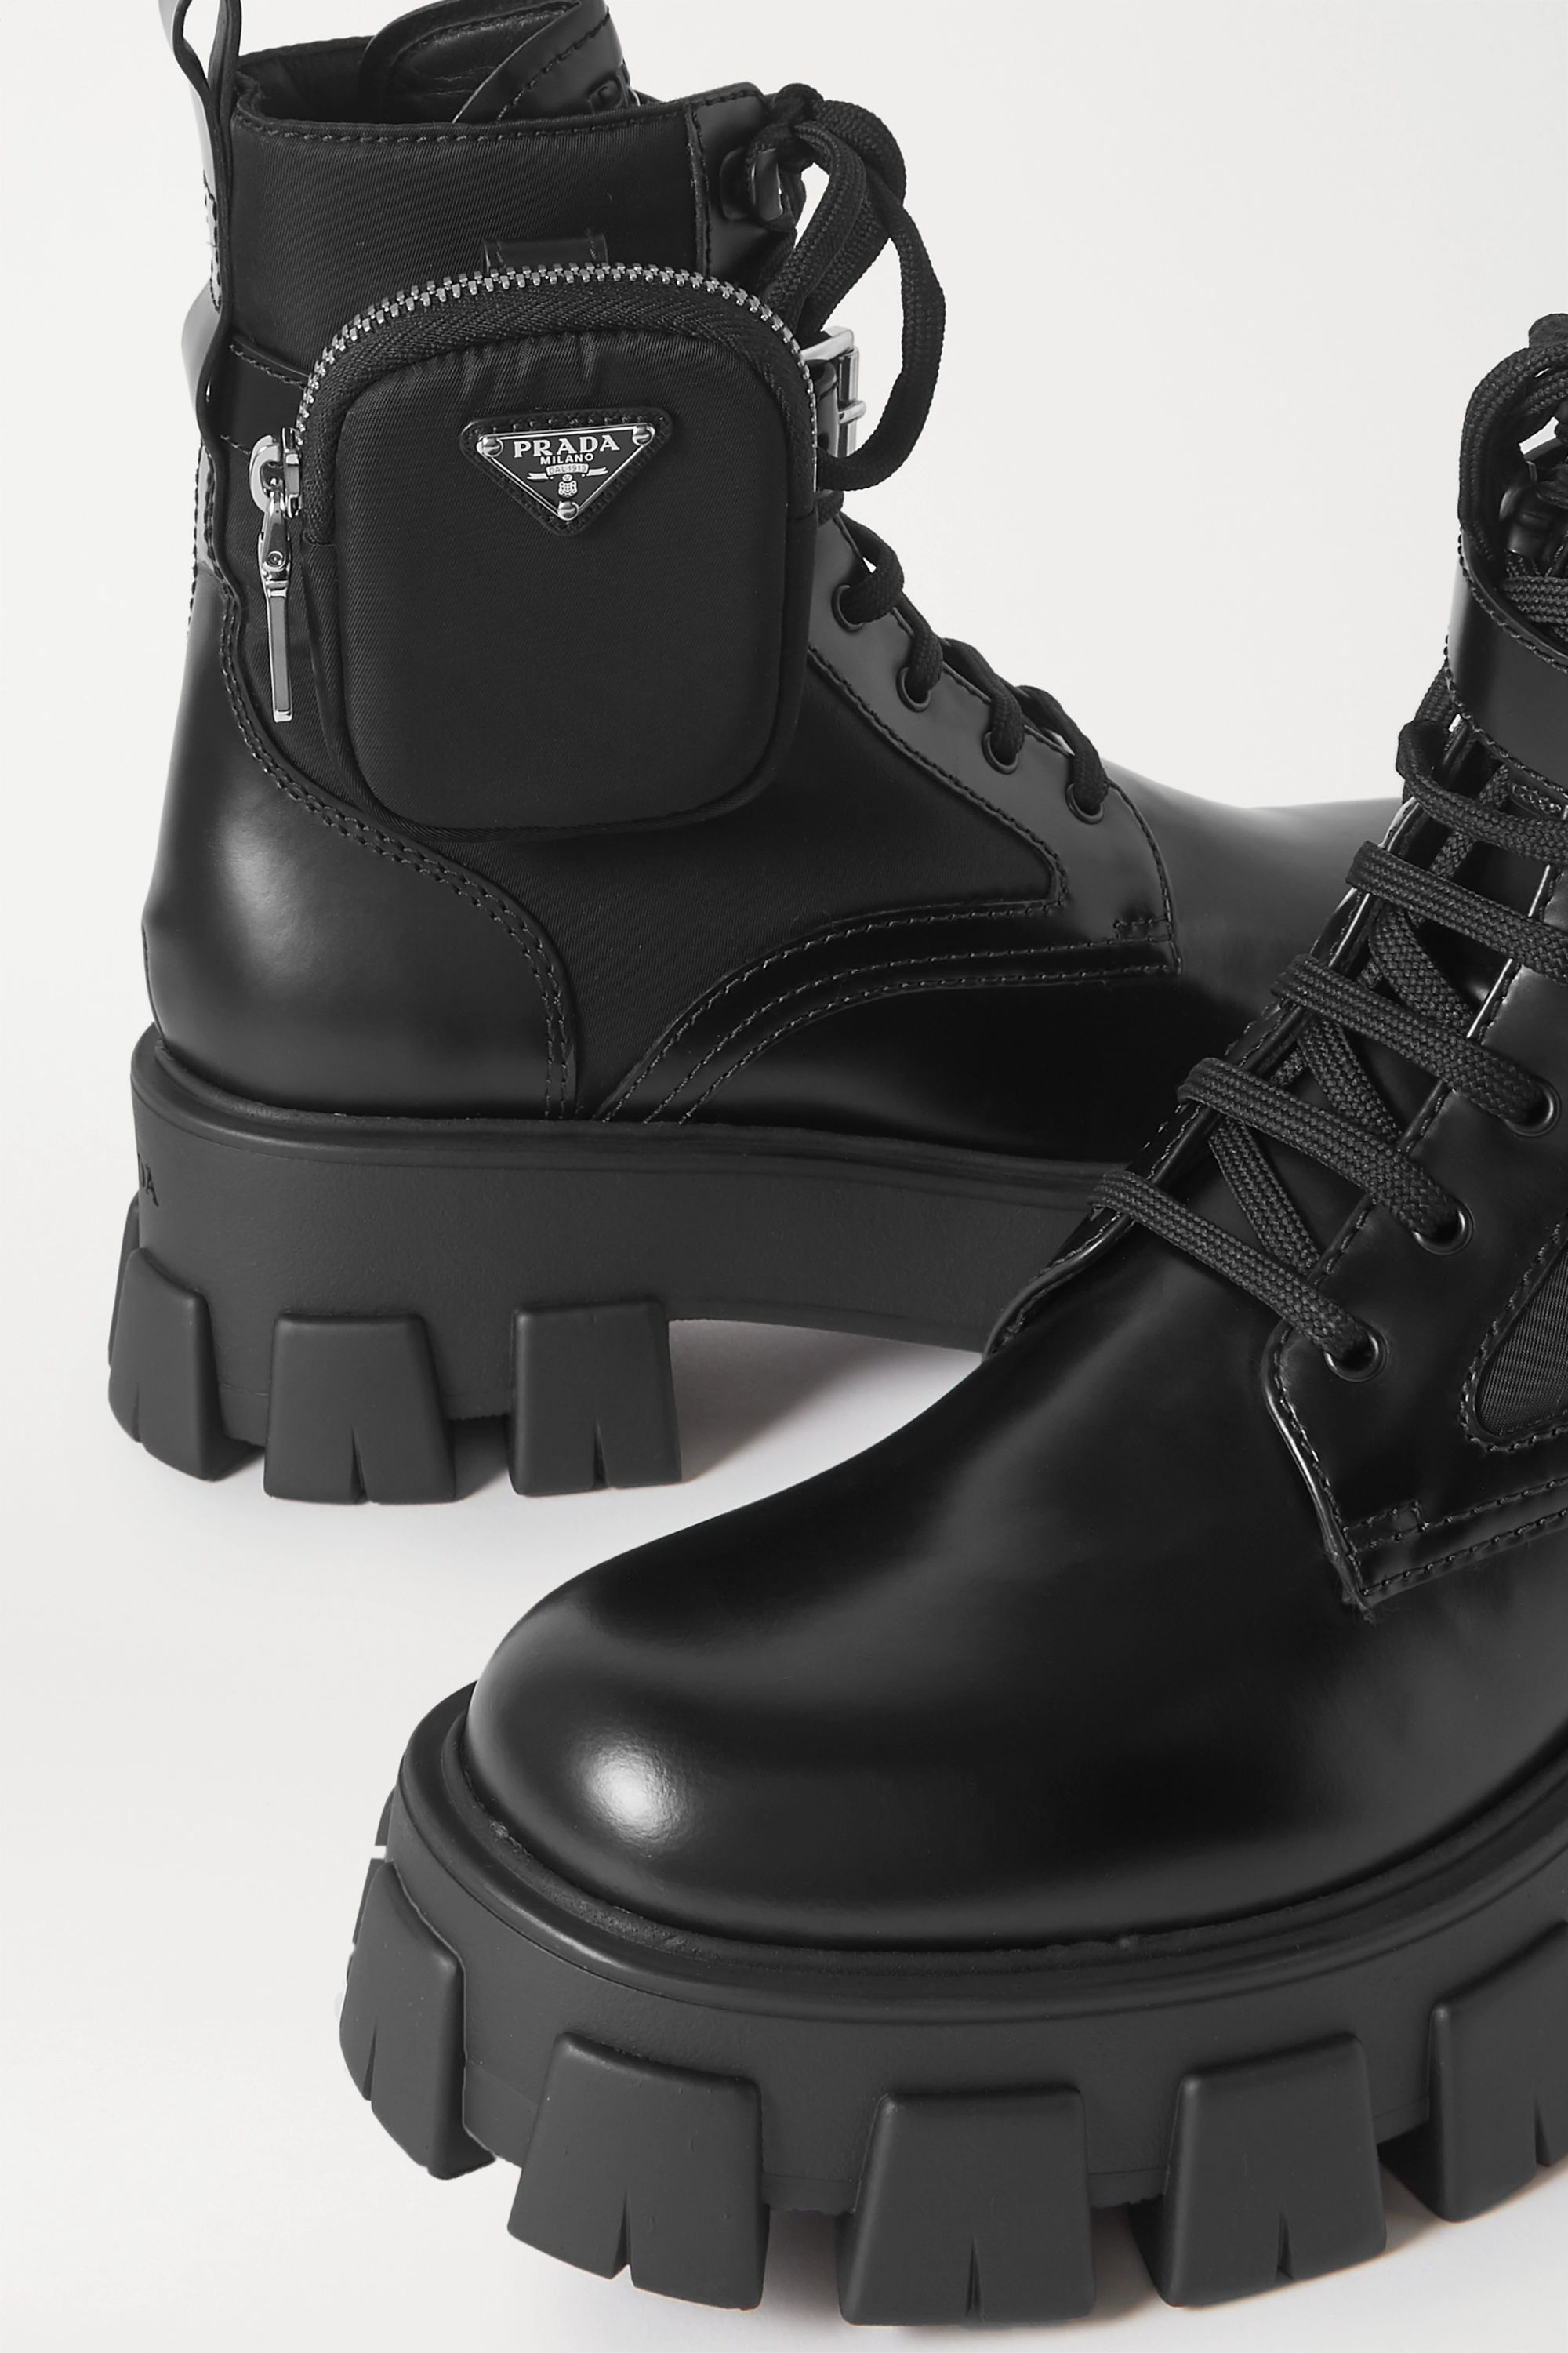 Prada Monolith leather and nylon ankle boots